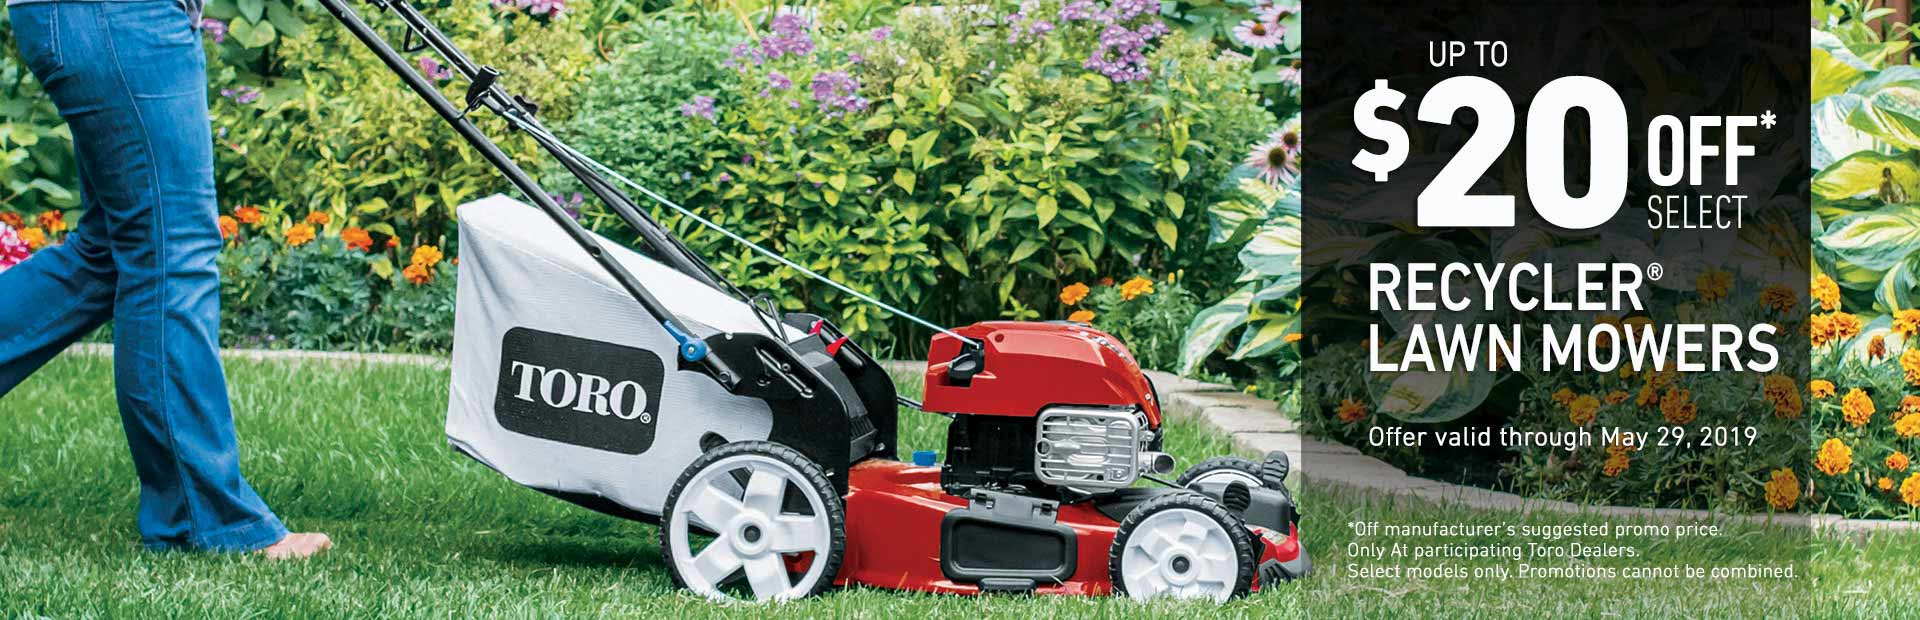 Toro: $20 Off Select Recycler Mowers